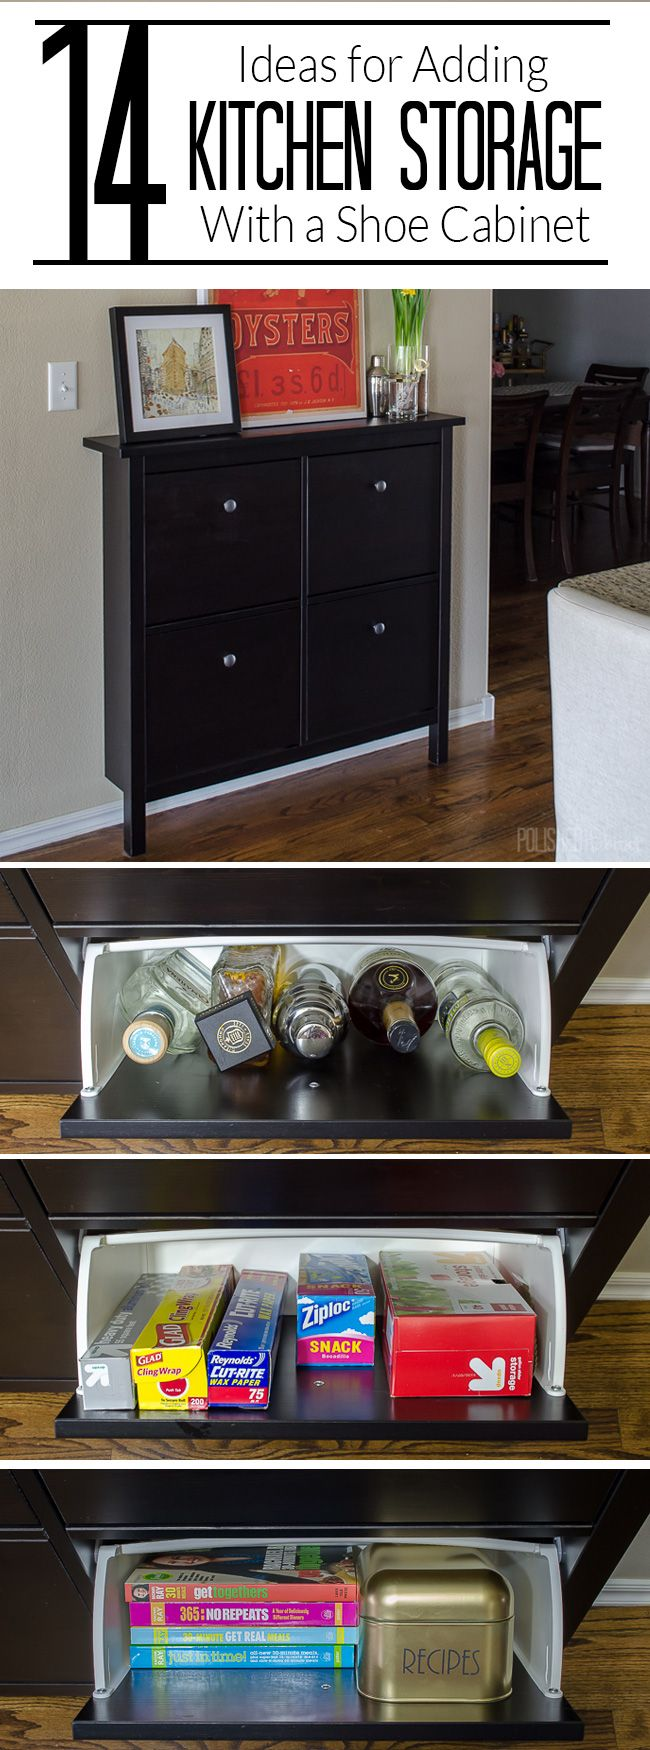 Add Kitchen Storage In A Small Space | HEMNES, Small Spaces And Storage Part 95